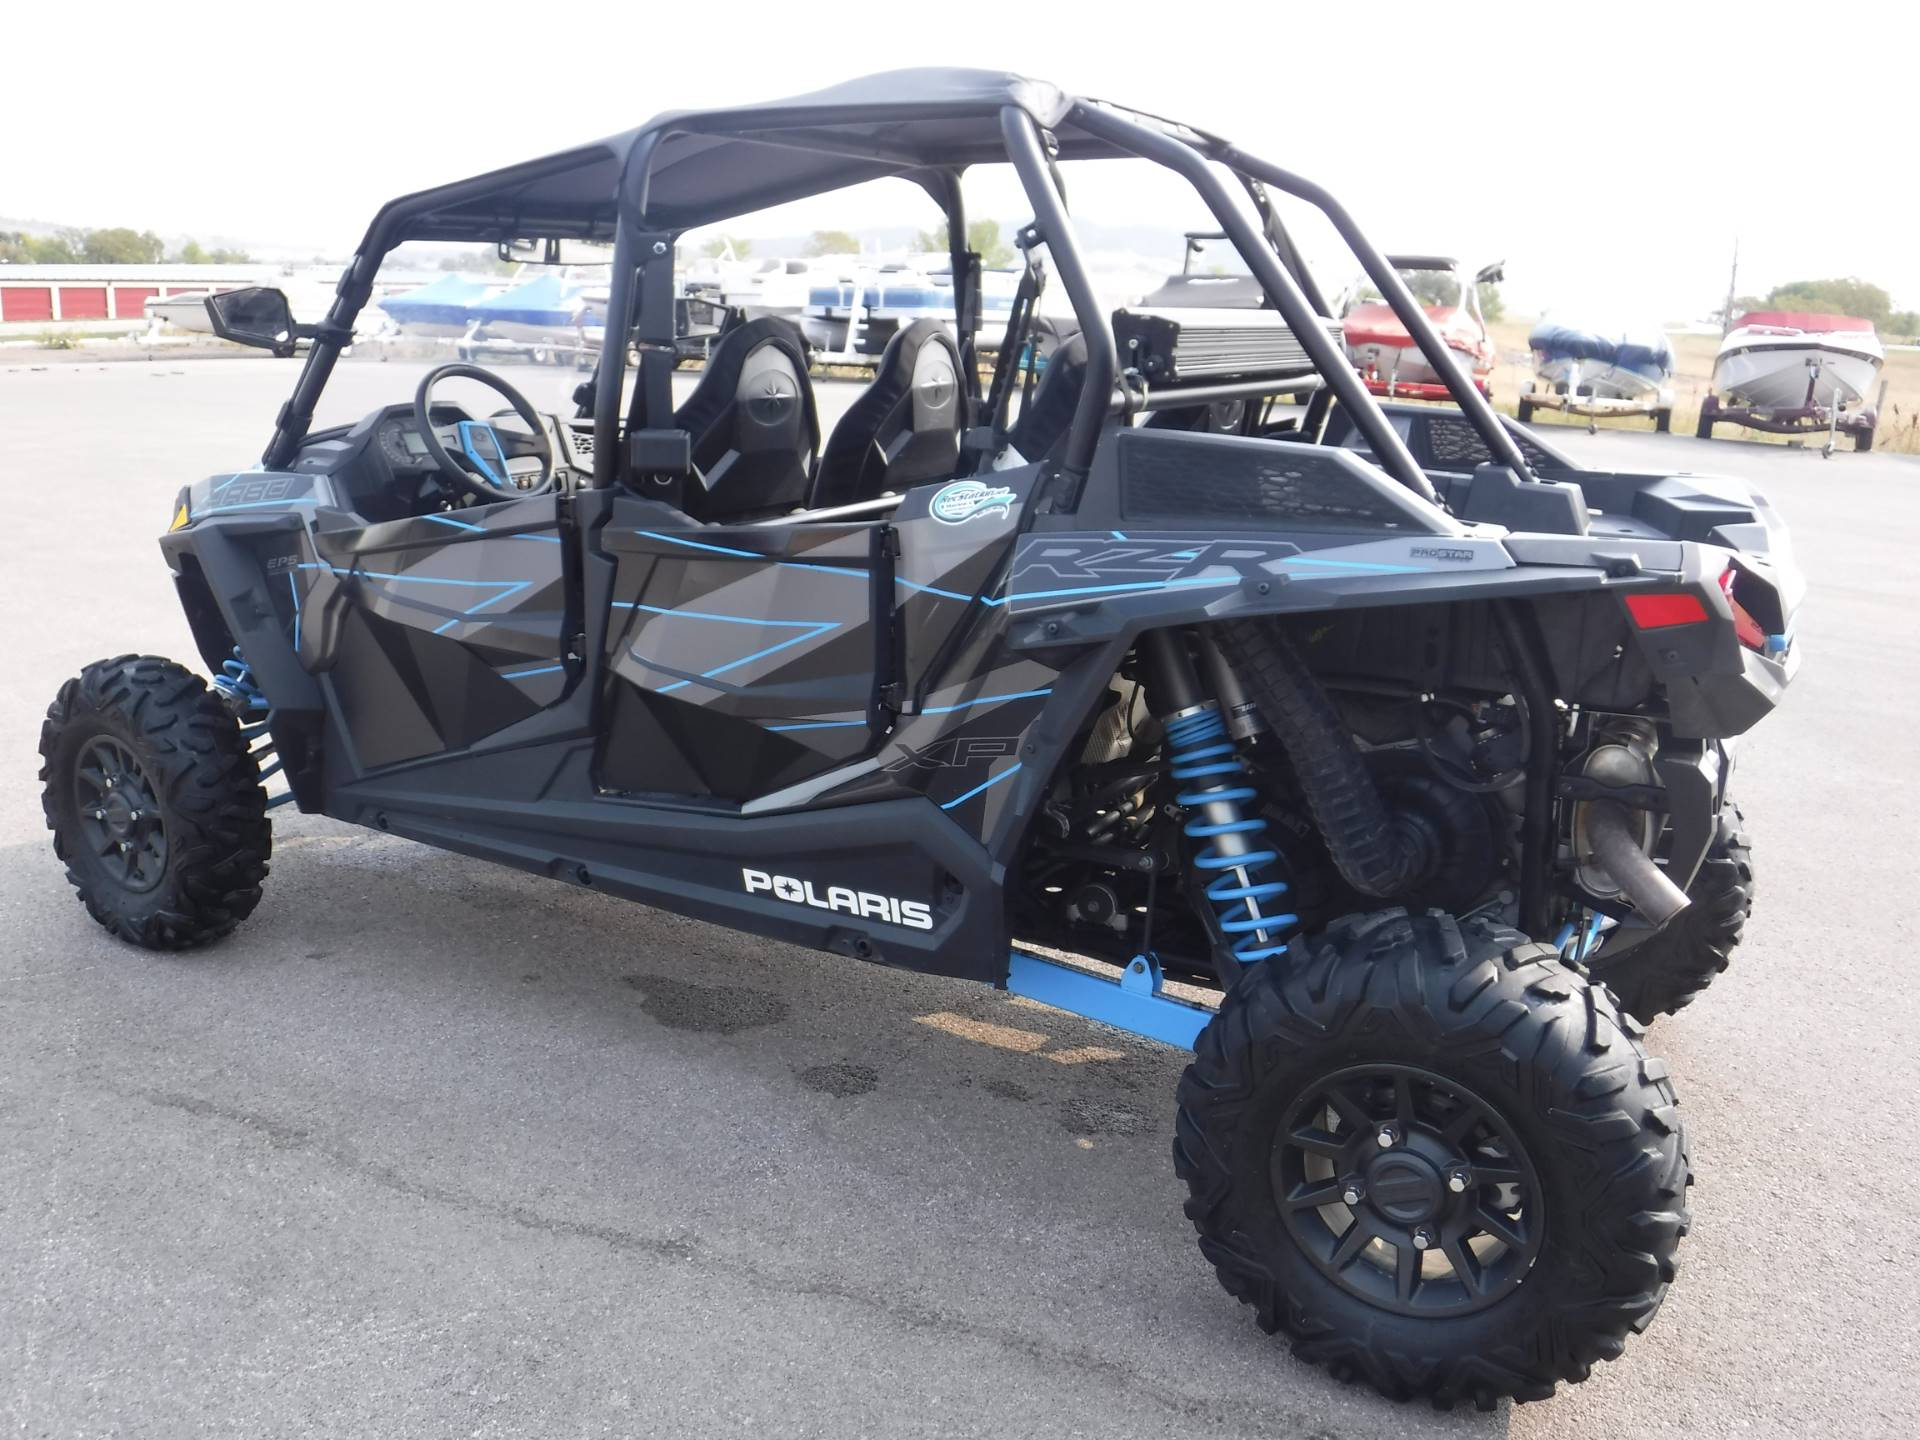 2019 Polaris RZR XP 4 Turbo in Spearfish, South Dakota - Photo 3